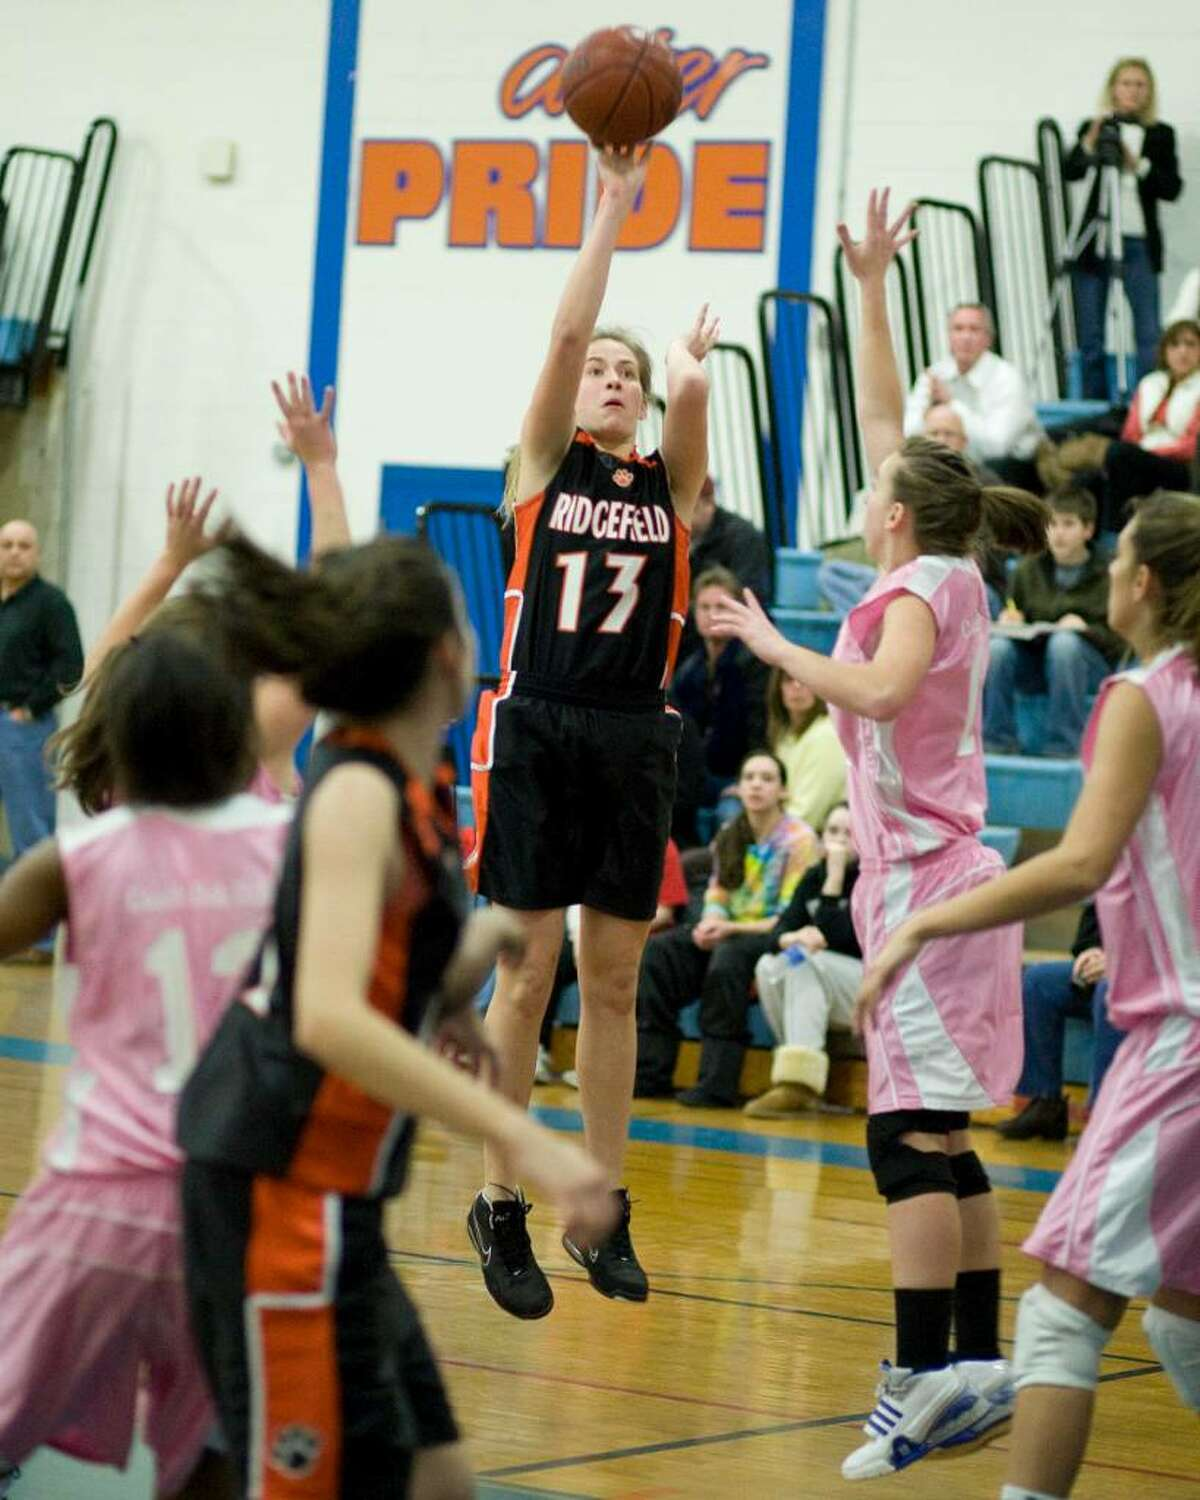 Ridgefield's Michelle Gibbons (13) pops a jump shot over Danbury defender Nicole Kline during their FCIAC game Tuesday night at Danbury High.